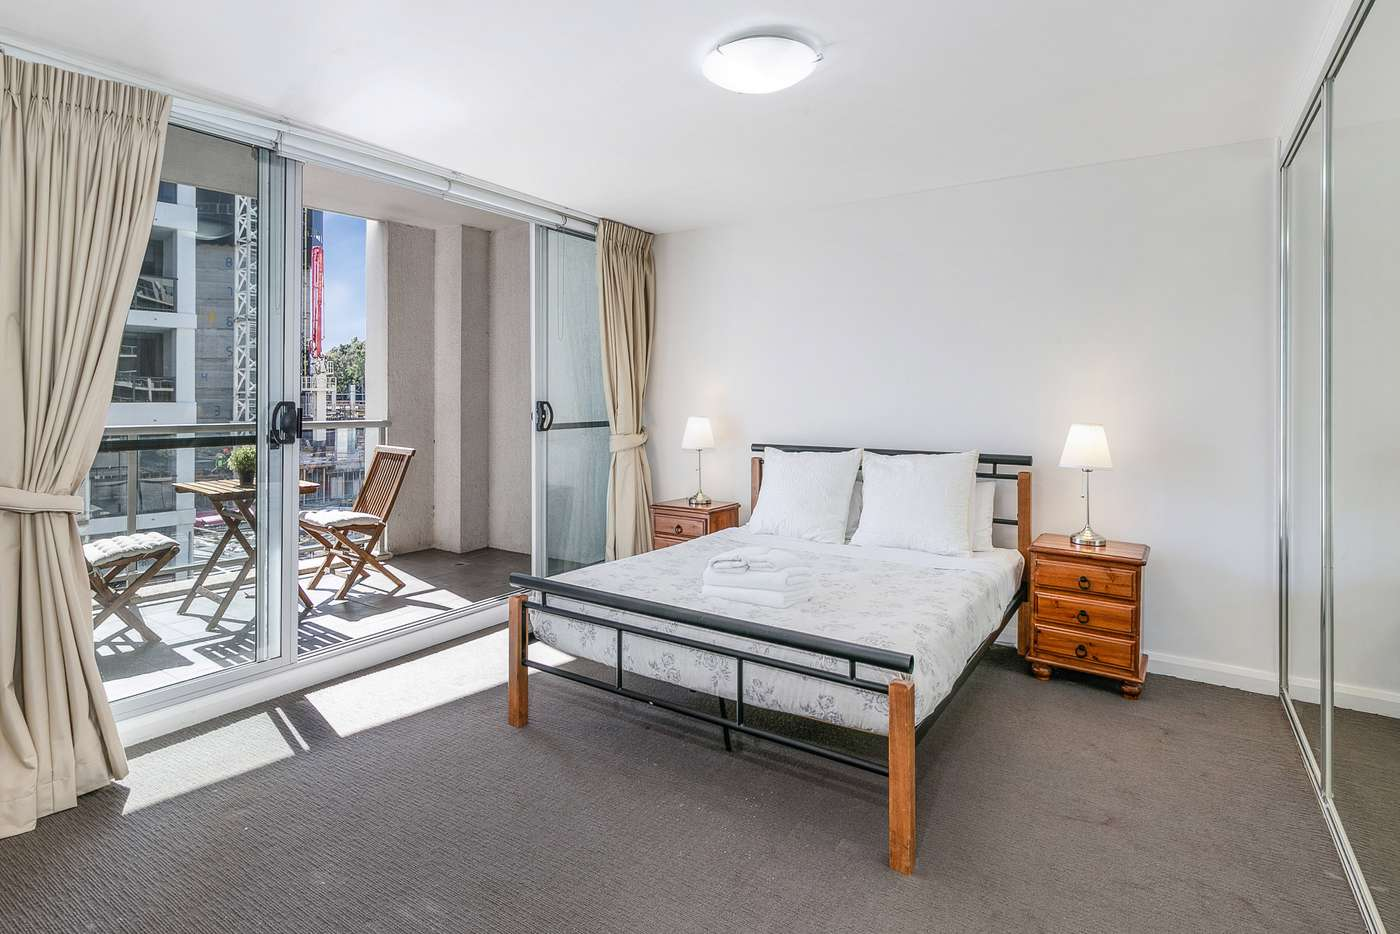 Sixth view of Homely apartment listing, 620/22 Charles Street, Parramatta NSW 2150